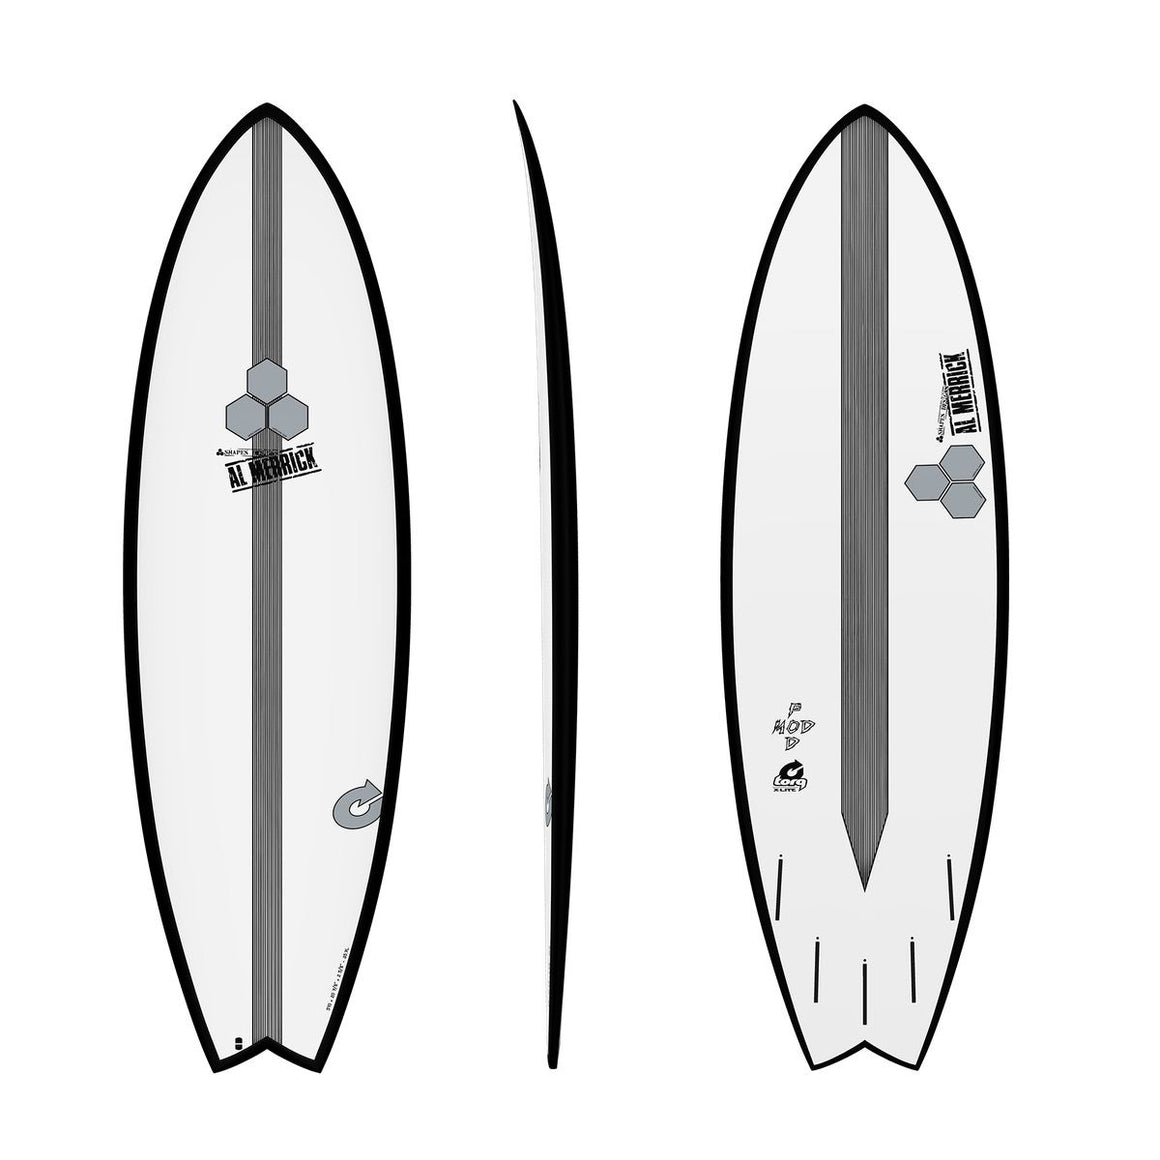 Channel Islands PodMod 6'2 - 5 fin FUT - X-LITE - Grey